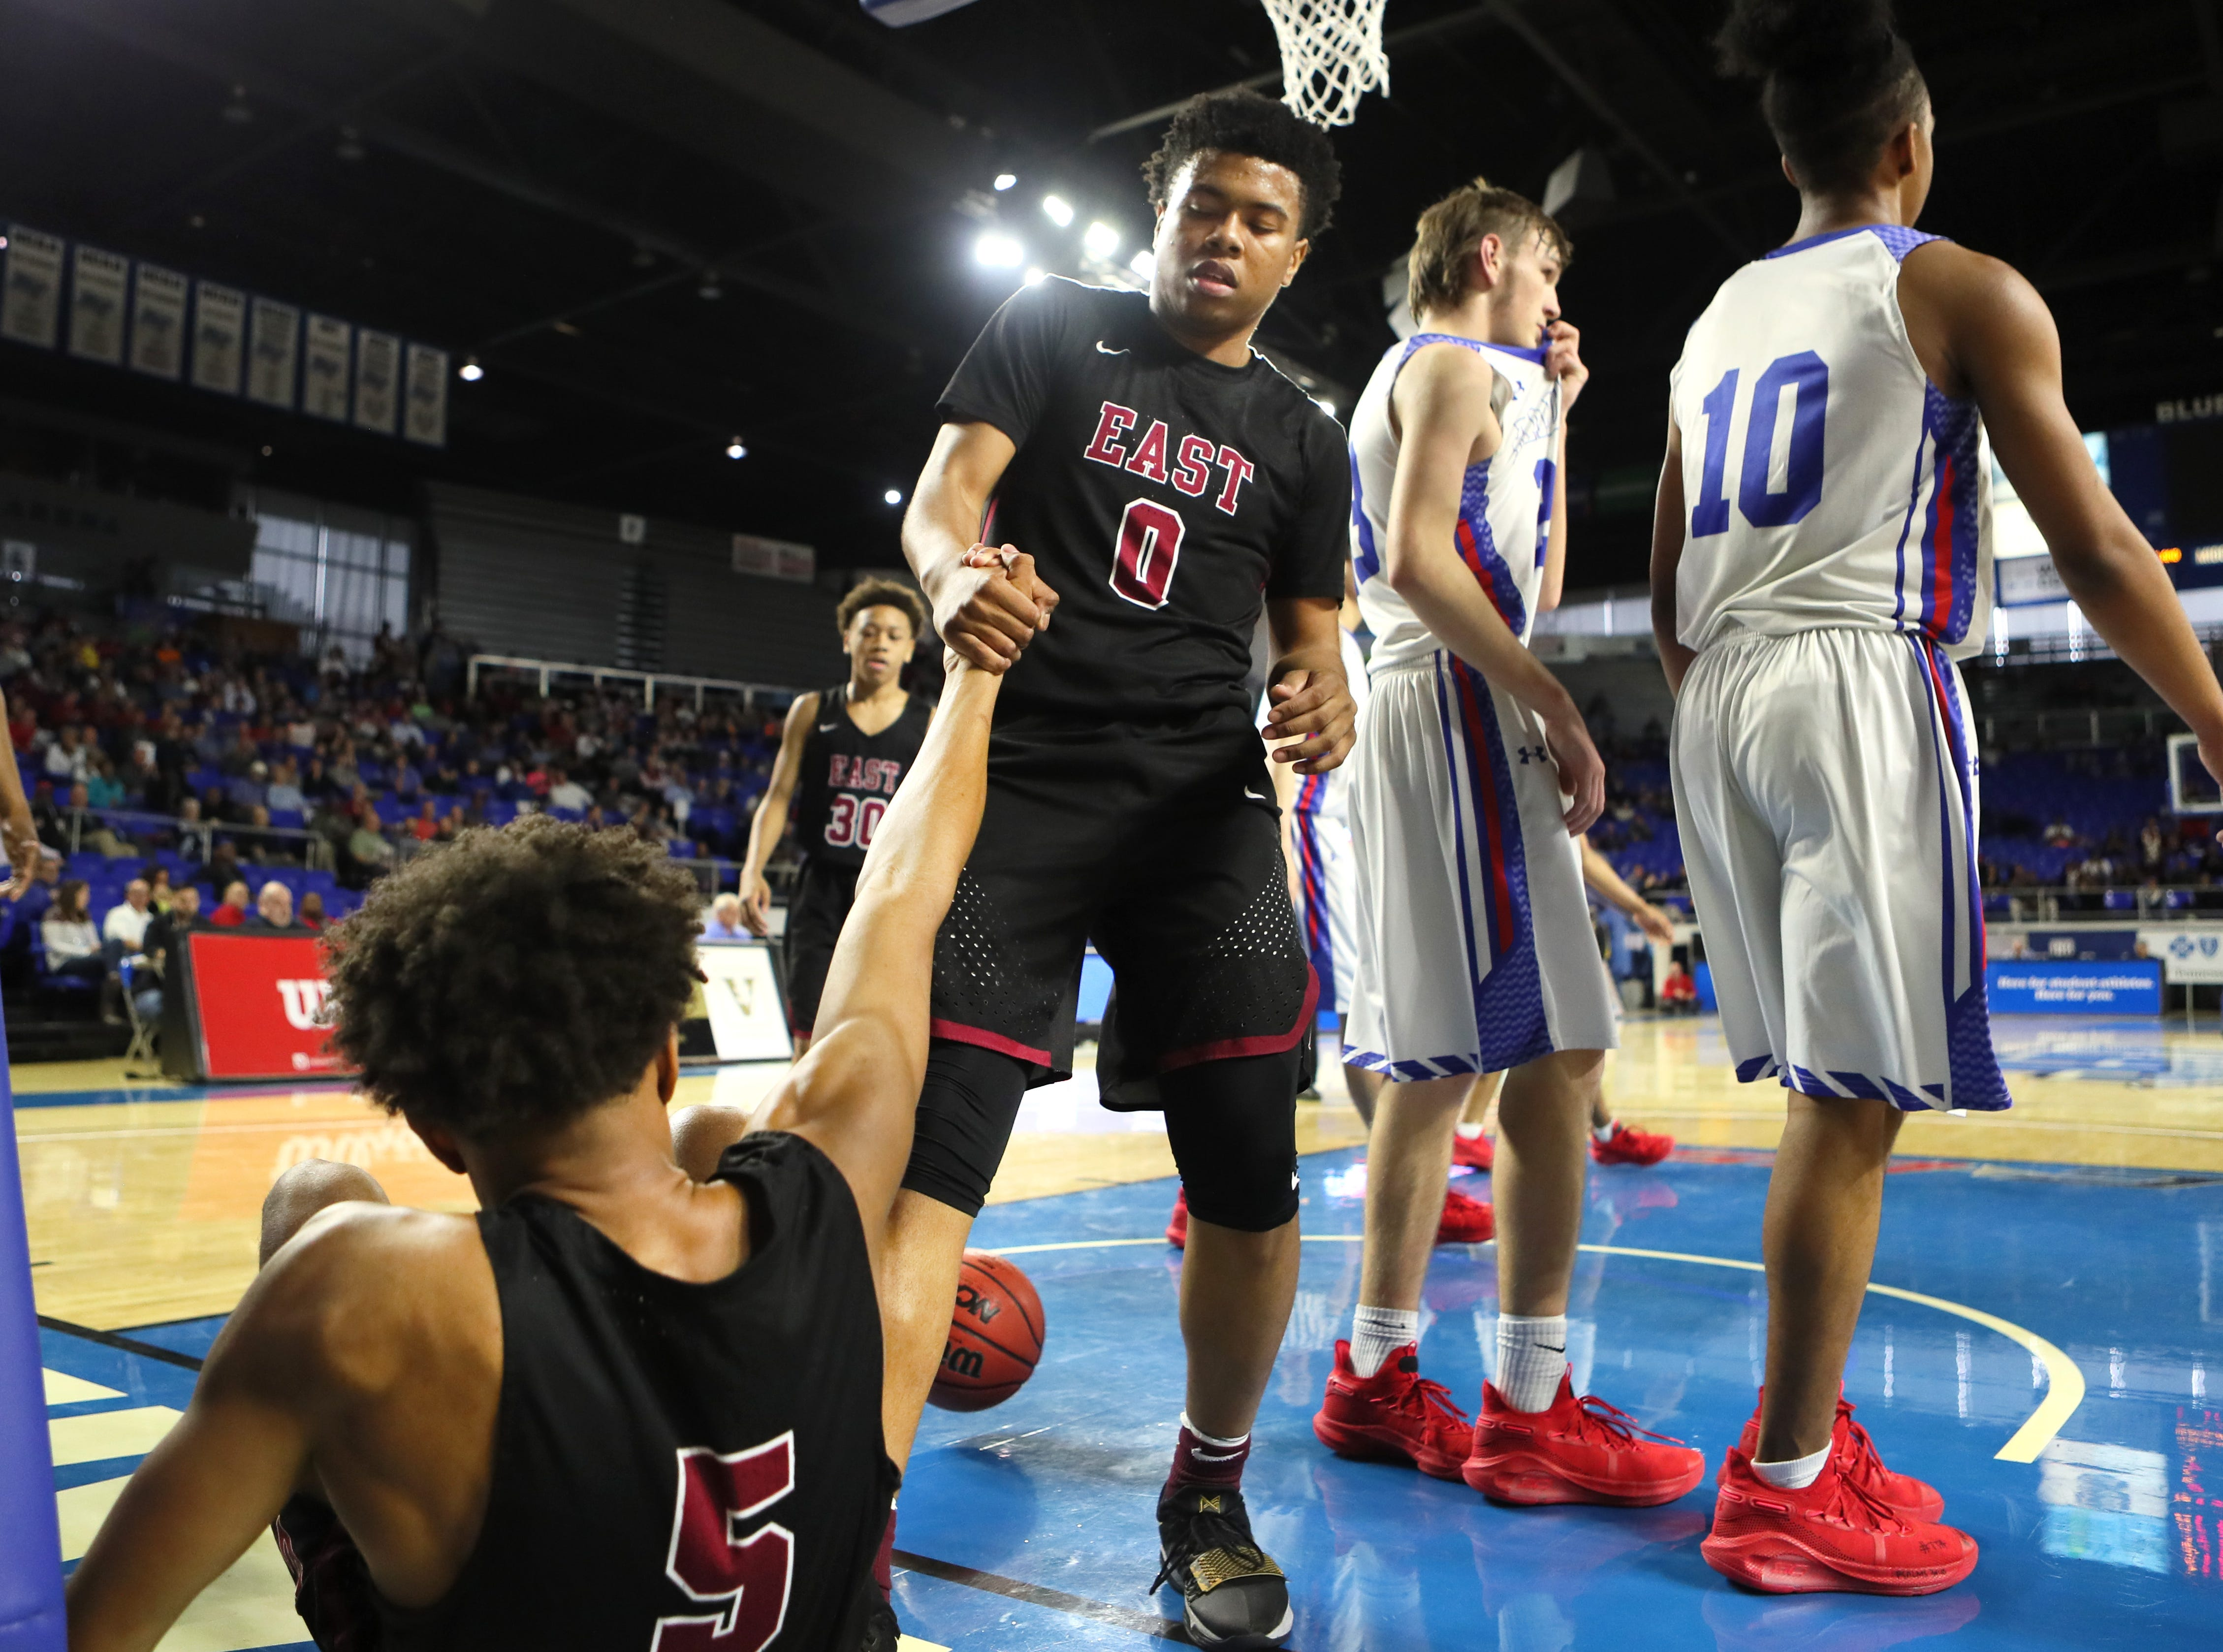 Memphis East's Derrein Merriweather helps up teammate Tadarius Jacobs as they take on Cleveland during the TSSAA Division I basketball state tournament at the Murphy Center in Murfreesboro, Tenn. on Thursday, March 14, 2019.